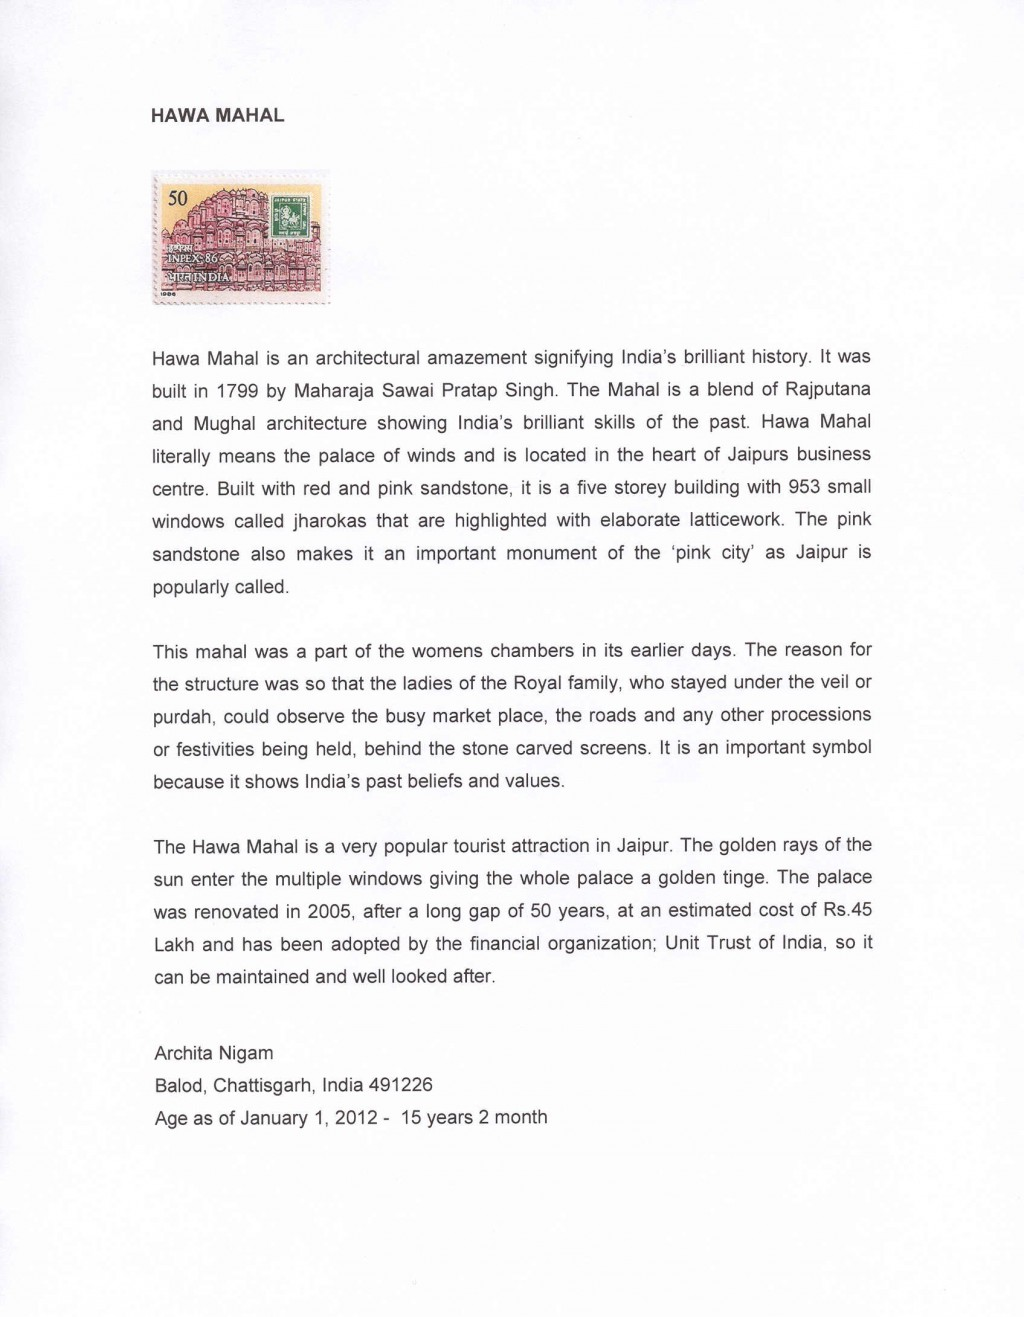 018 Hawamahal Concept Essay Fearsome On Racism Paper Examples Beauty Large